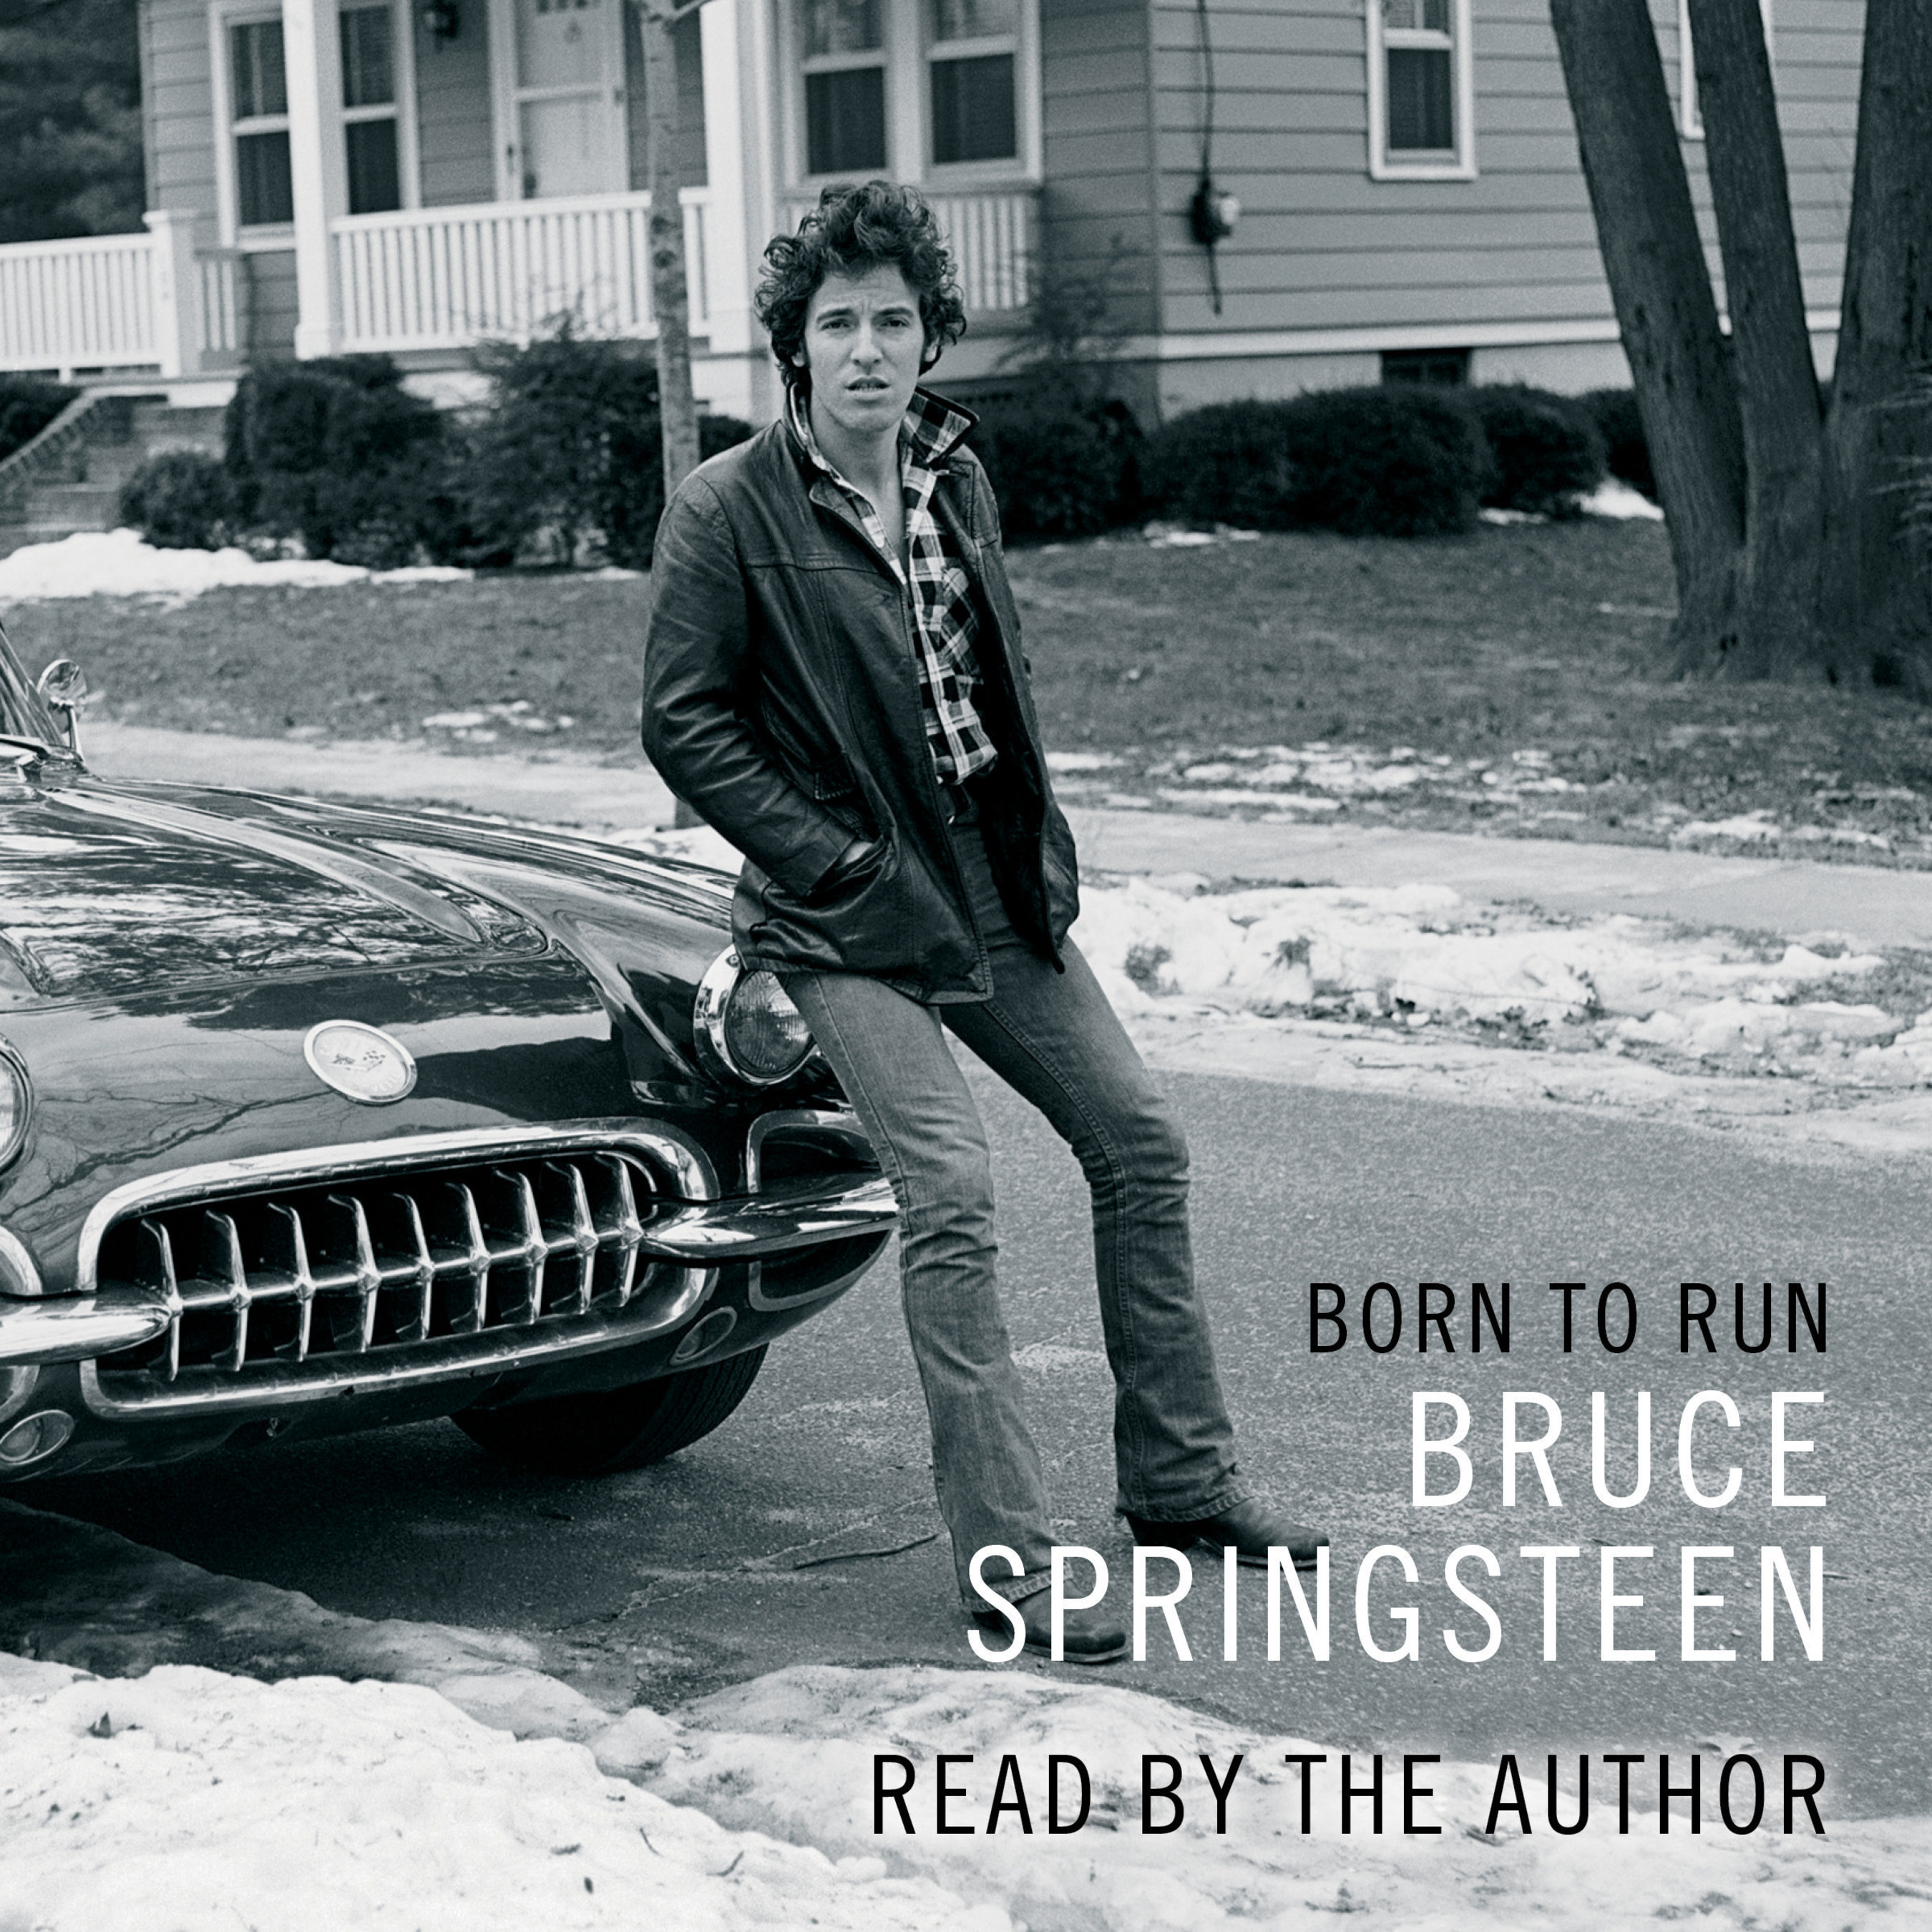 Bruce Springsteen narrates the audiobook edition of his memoir BORN TO RUN, available December 6th!